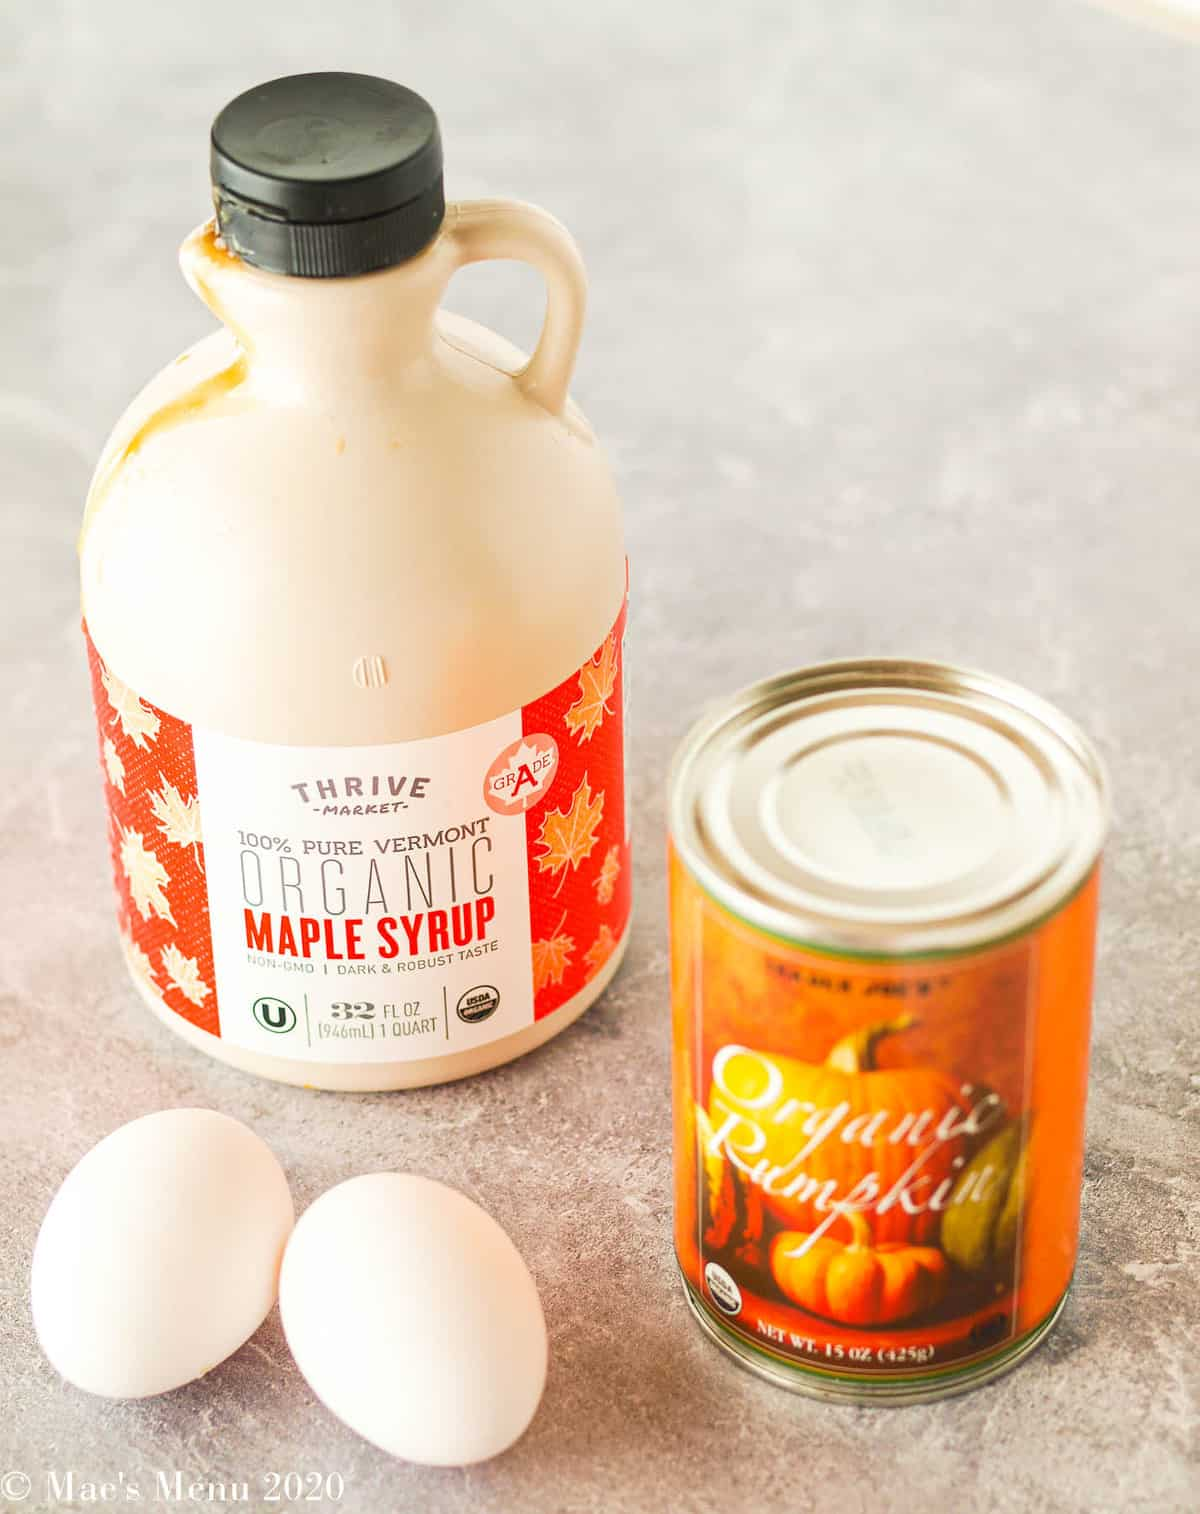 A jug of maple syrup, can of pumpkin, and 2 eggs